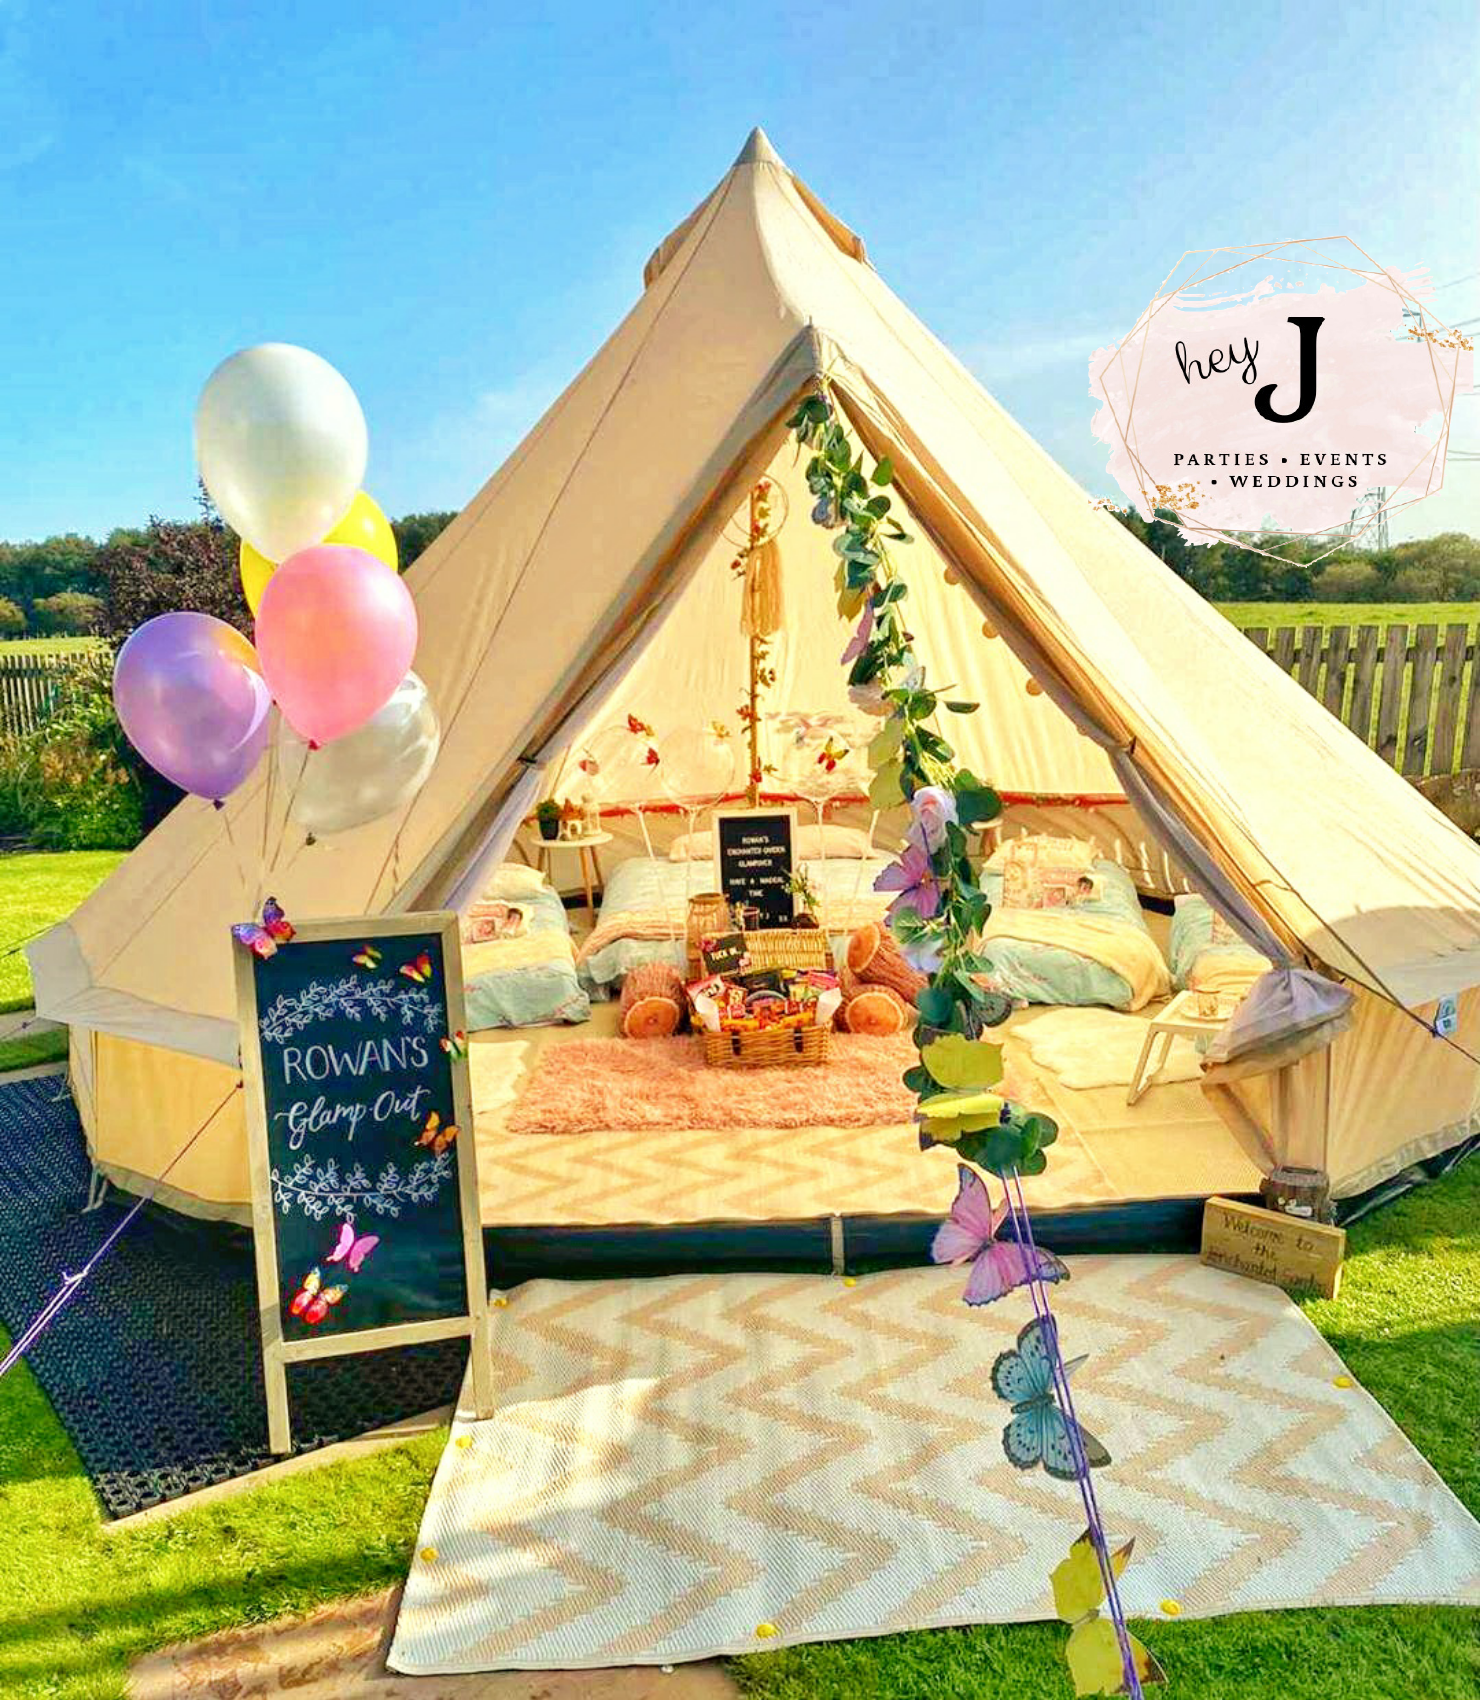 Teepee with balloons outside